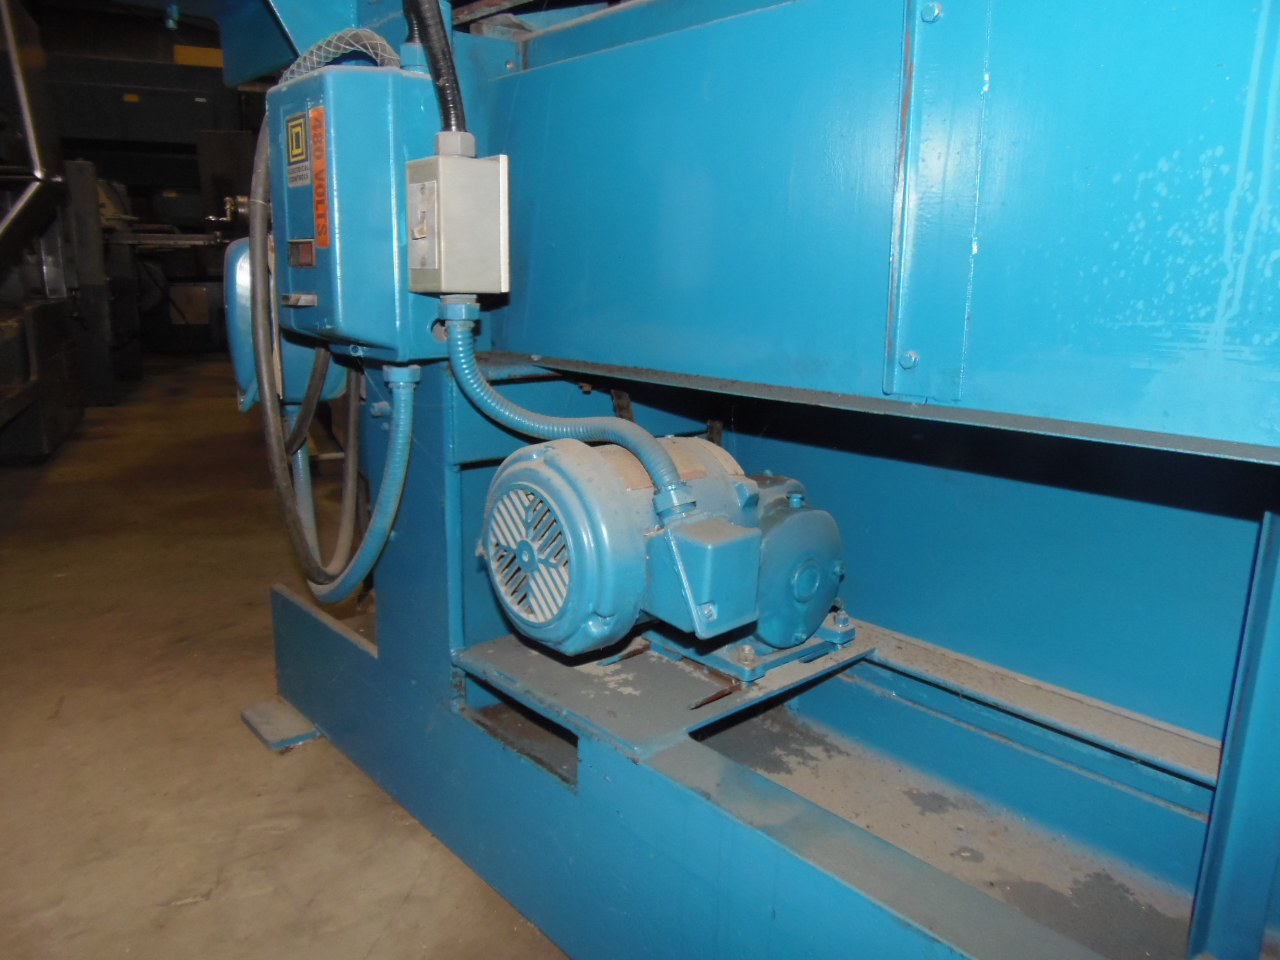 "BELT GRINDER, 3"" BELT WIDTH, 132"" LENGTH, 3650 FPM, 7.5 HP DIRECT DRIVE MOTOR, BELT TENSION, POWER VERTICAL ADJUSTMENT"